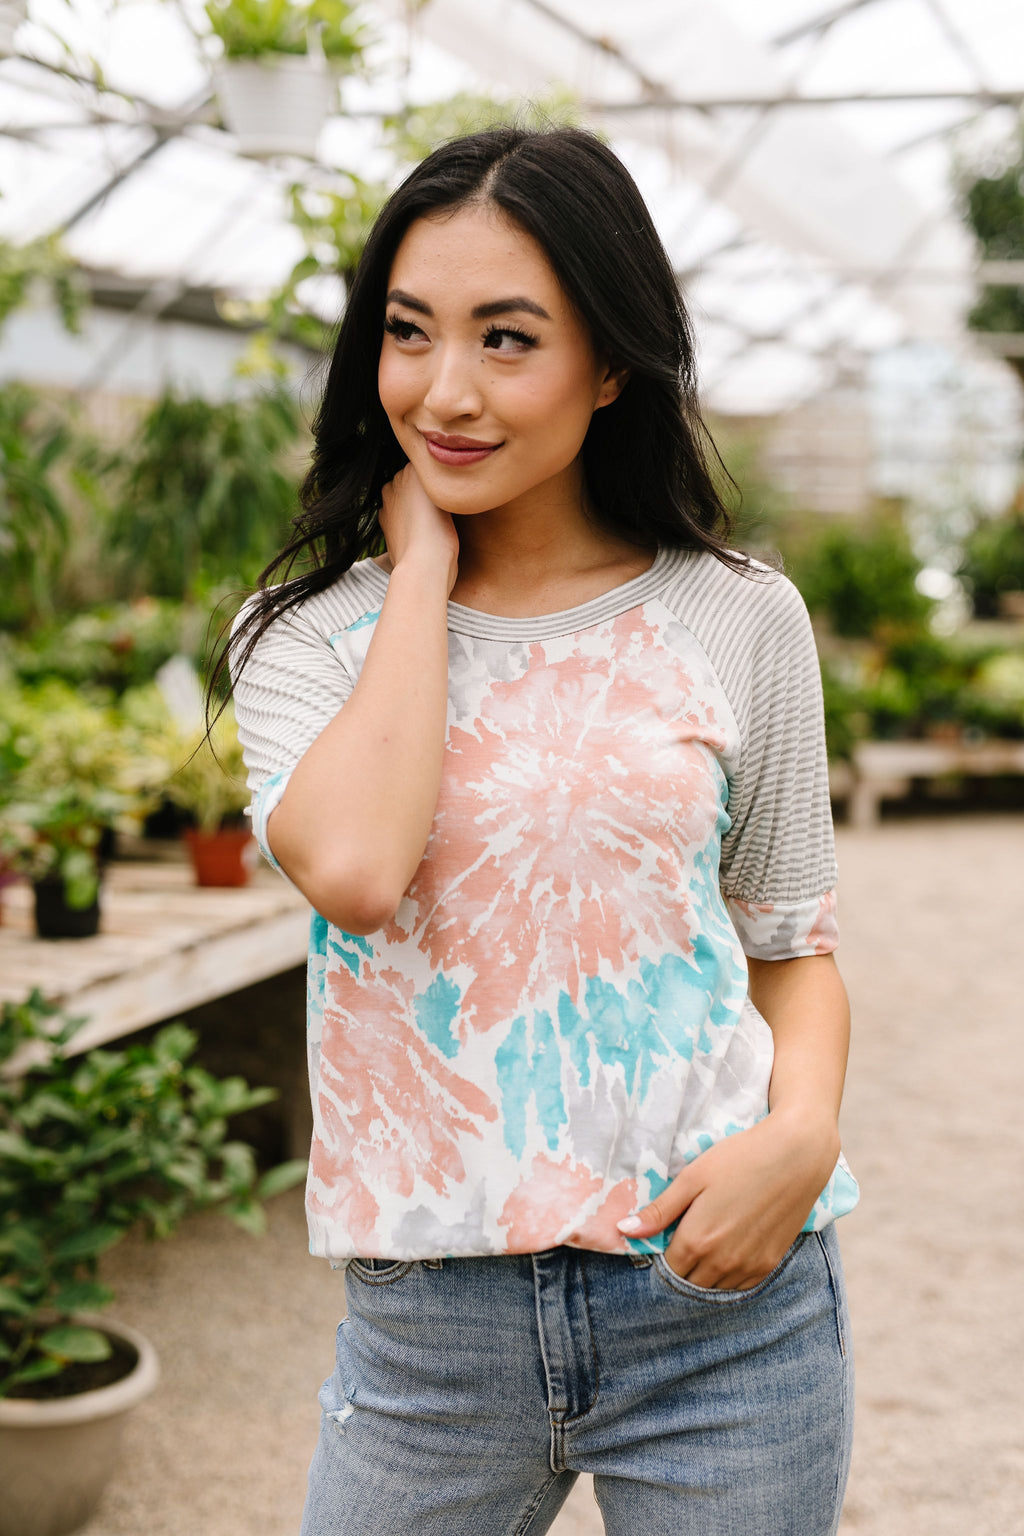 Bursts Of Tie Dye Raglan Top-1XL, 2XL, 3XL, 6-30-2020, 7-10-2020, Bonus, Group A, Group B, Group C, Large, Medium, Plus, Small, Tops, XL, XS-Womens Artisan USA American Made Clothing Accessories